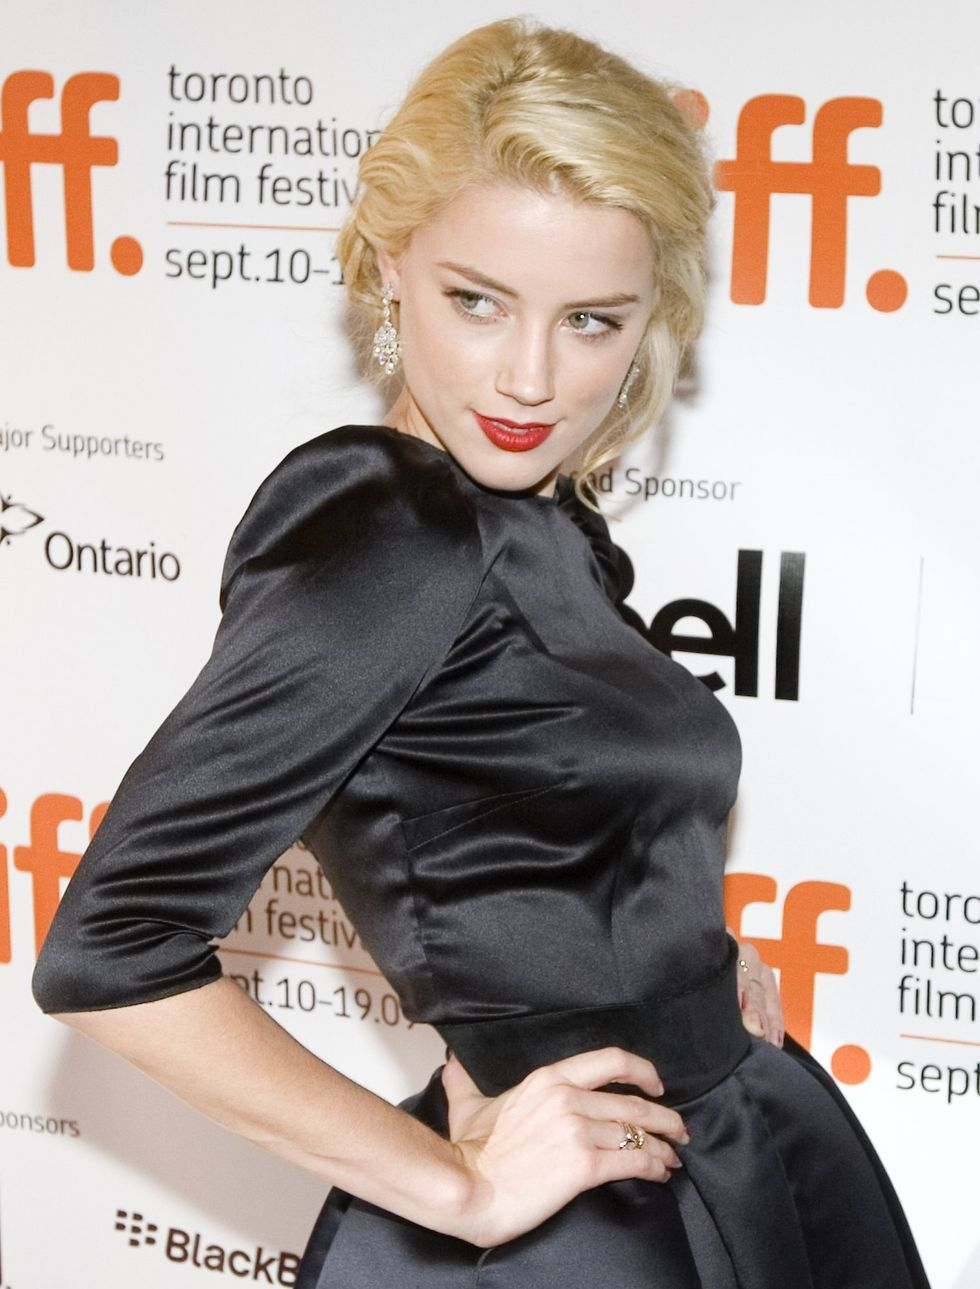 amber-heard-the-joneses-screening-in-toronto-01